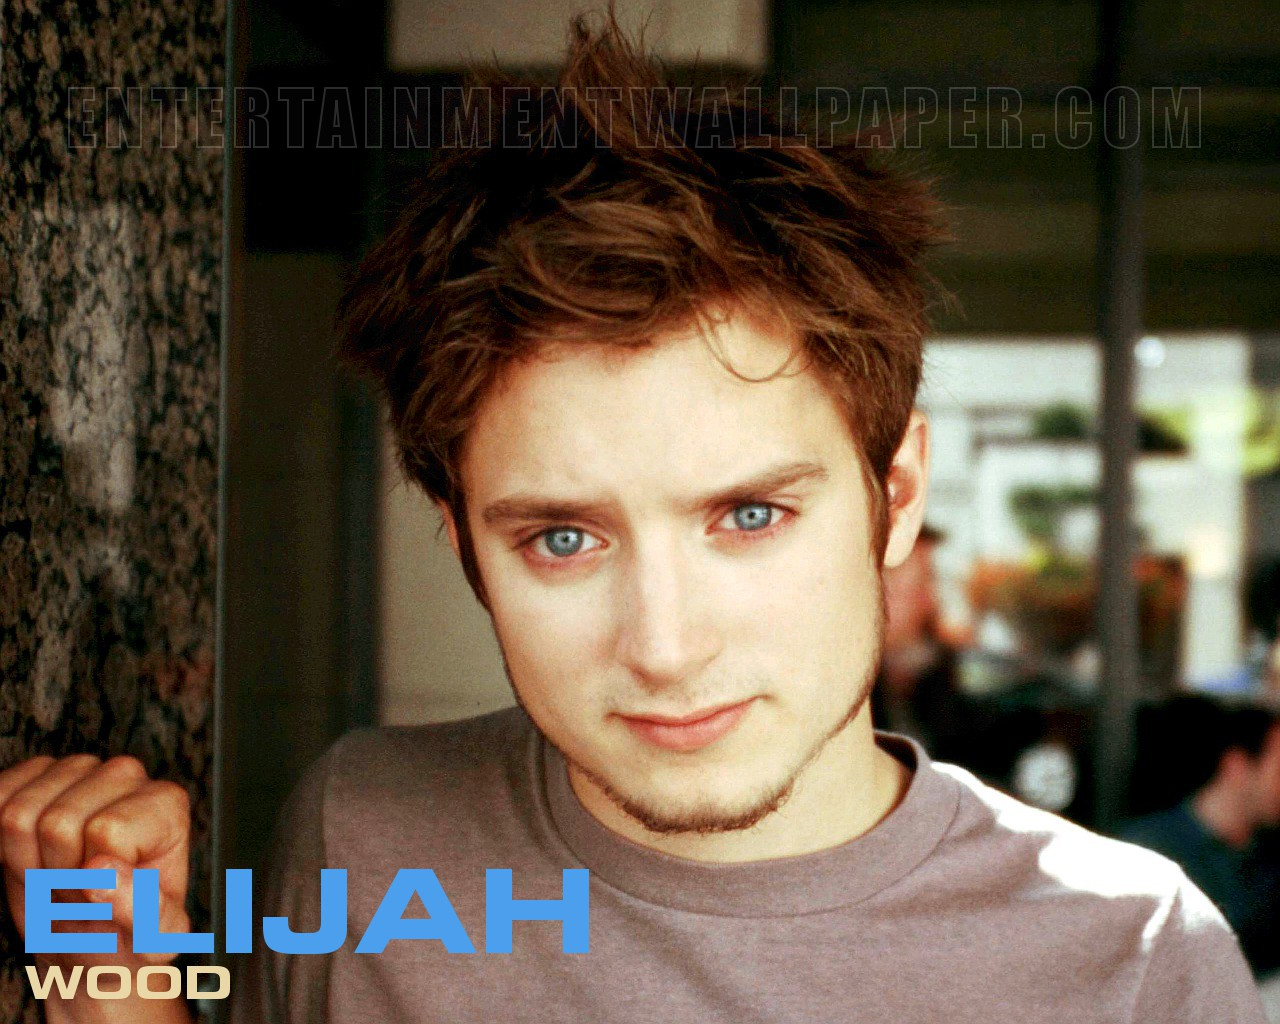 Elijah Wood Wallpaper - Original size, download now.